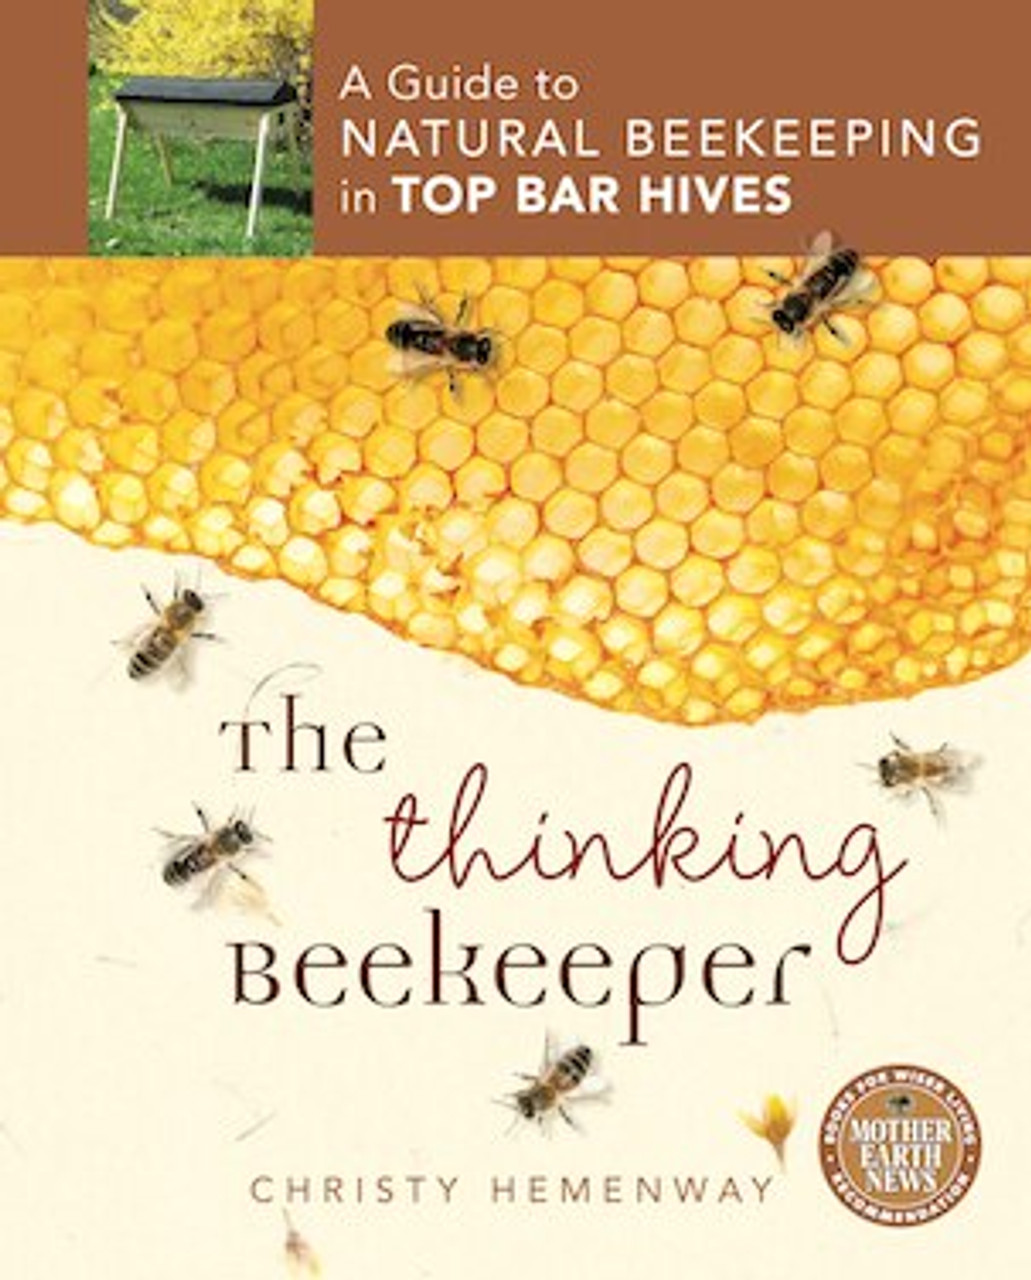 The Thinking Beekeeper - A Guide to Natural Beekeeping in Top Bar Hives is the definitive do-it-yourself guide to natural beekeeping in top bar hives. Based on supporting the bees' natural systems, as opposed to trying to subvert them, the advantages of this approach include:     - simplicity and sustainability     - better ergonomics due to less heavy lifting        - chemical-free colonies and natural beeswax  The book has many photos and detailed diagrams of hive management steps throughout the season, as well as a blank master diagram for you to copy and use to record your hive's progress.